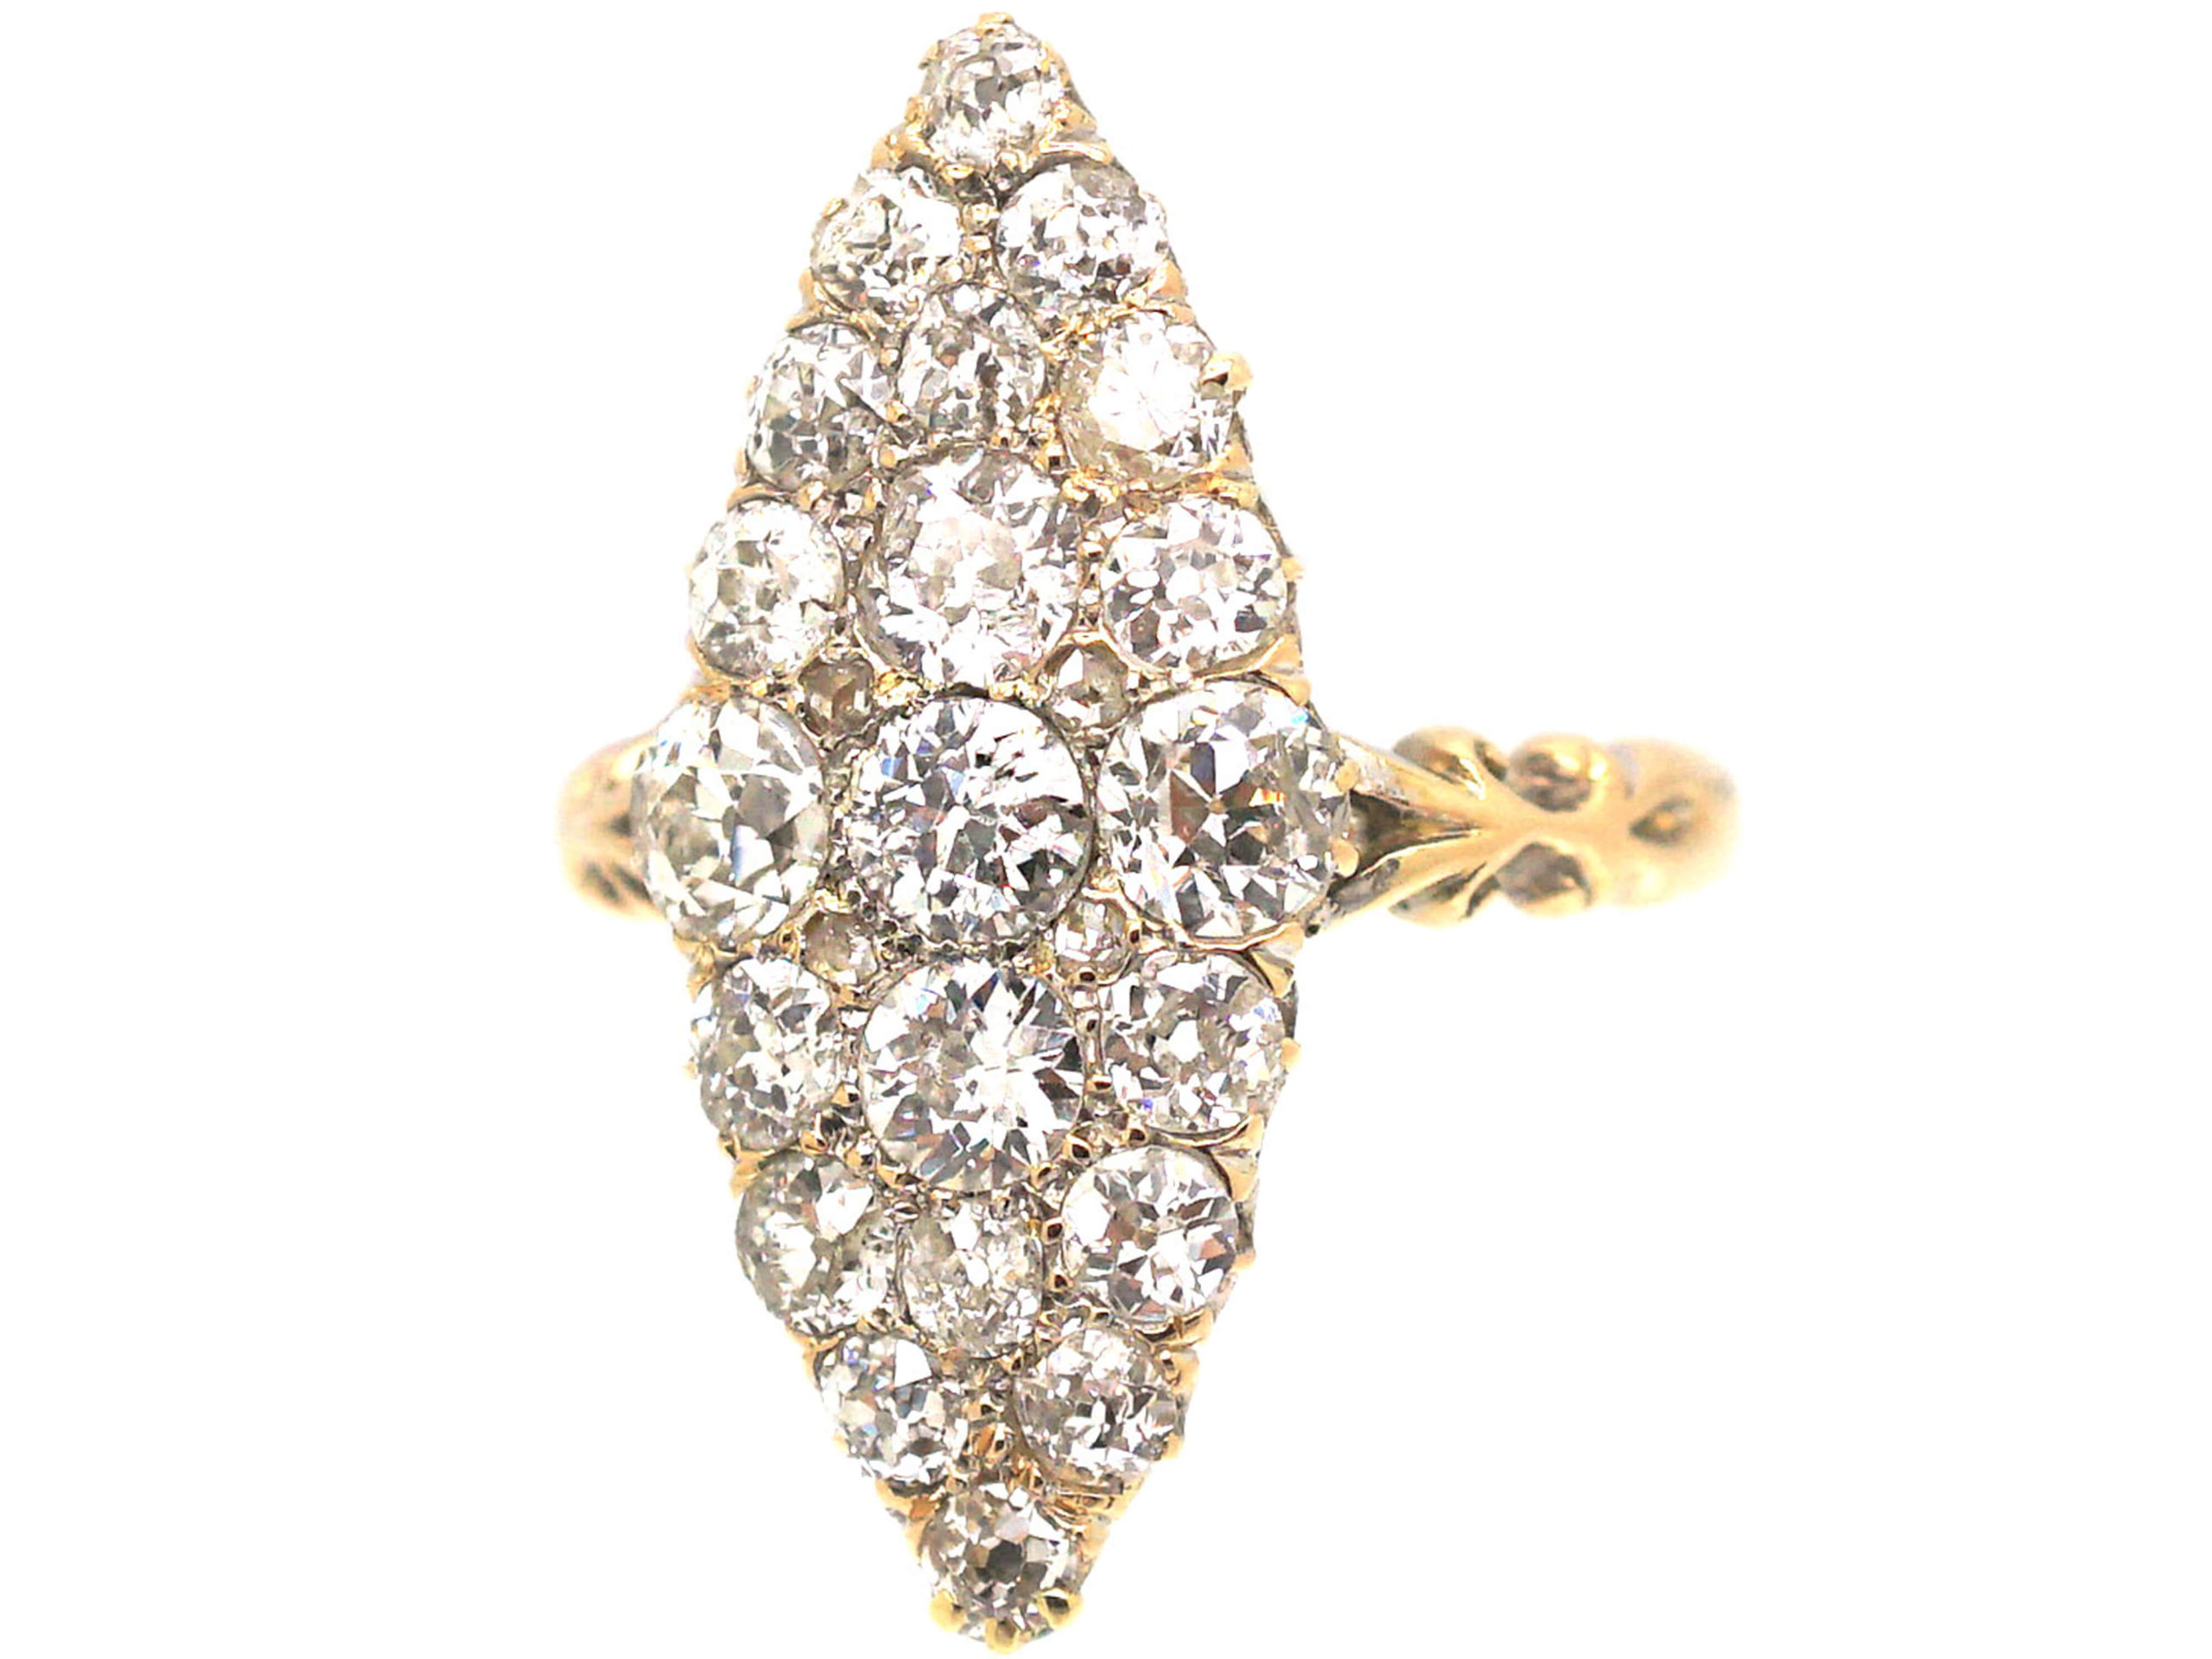 Victorian 18ct Gold, Marquise Shaped Diamond Ring